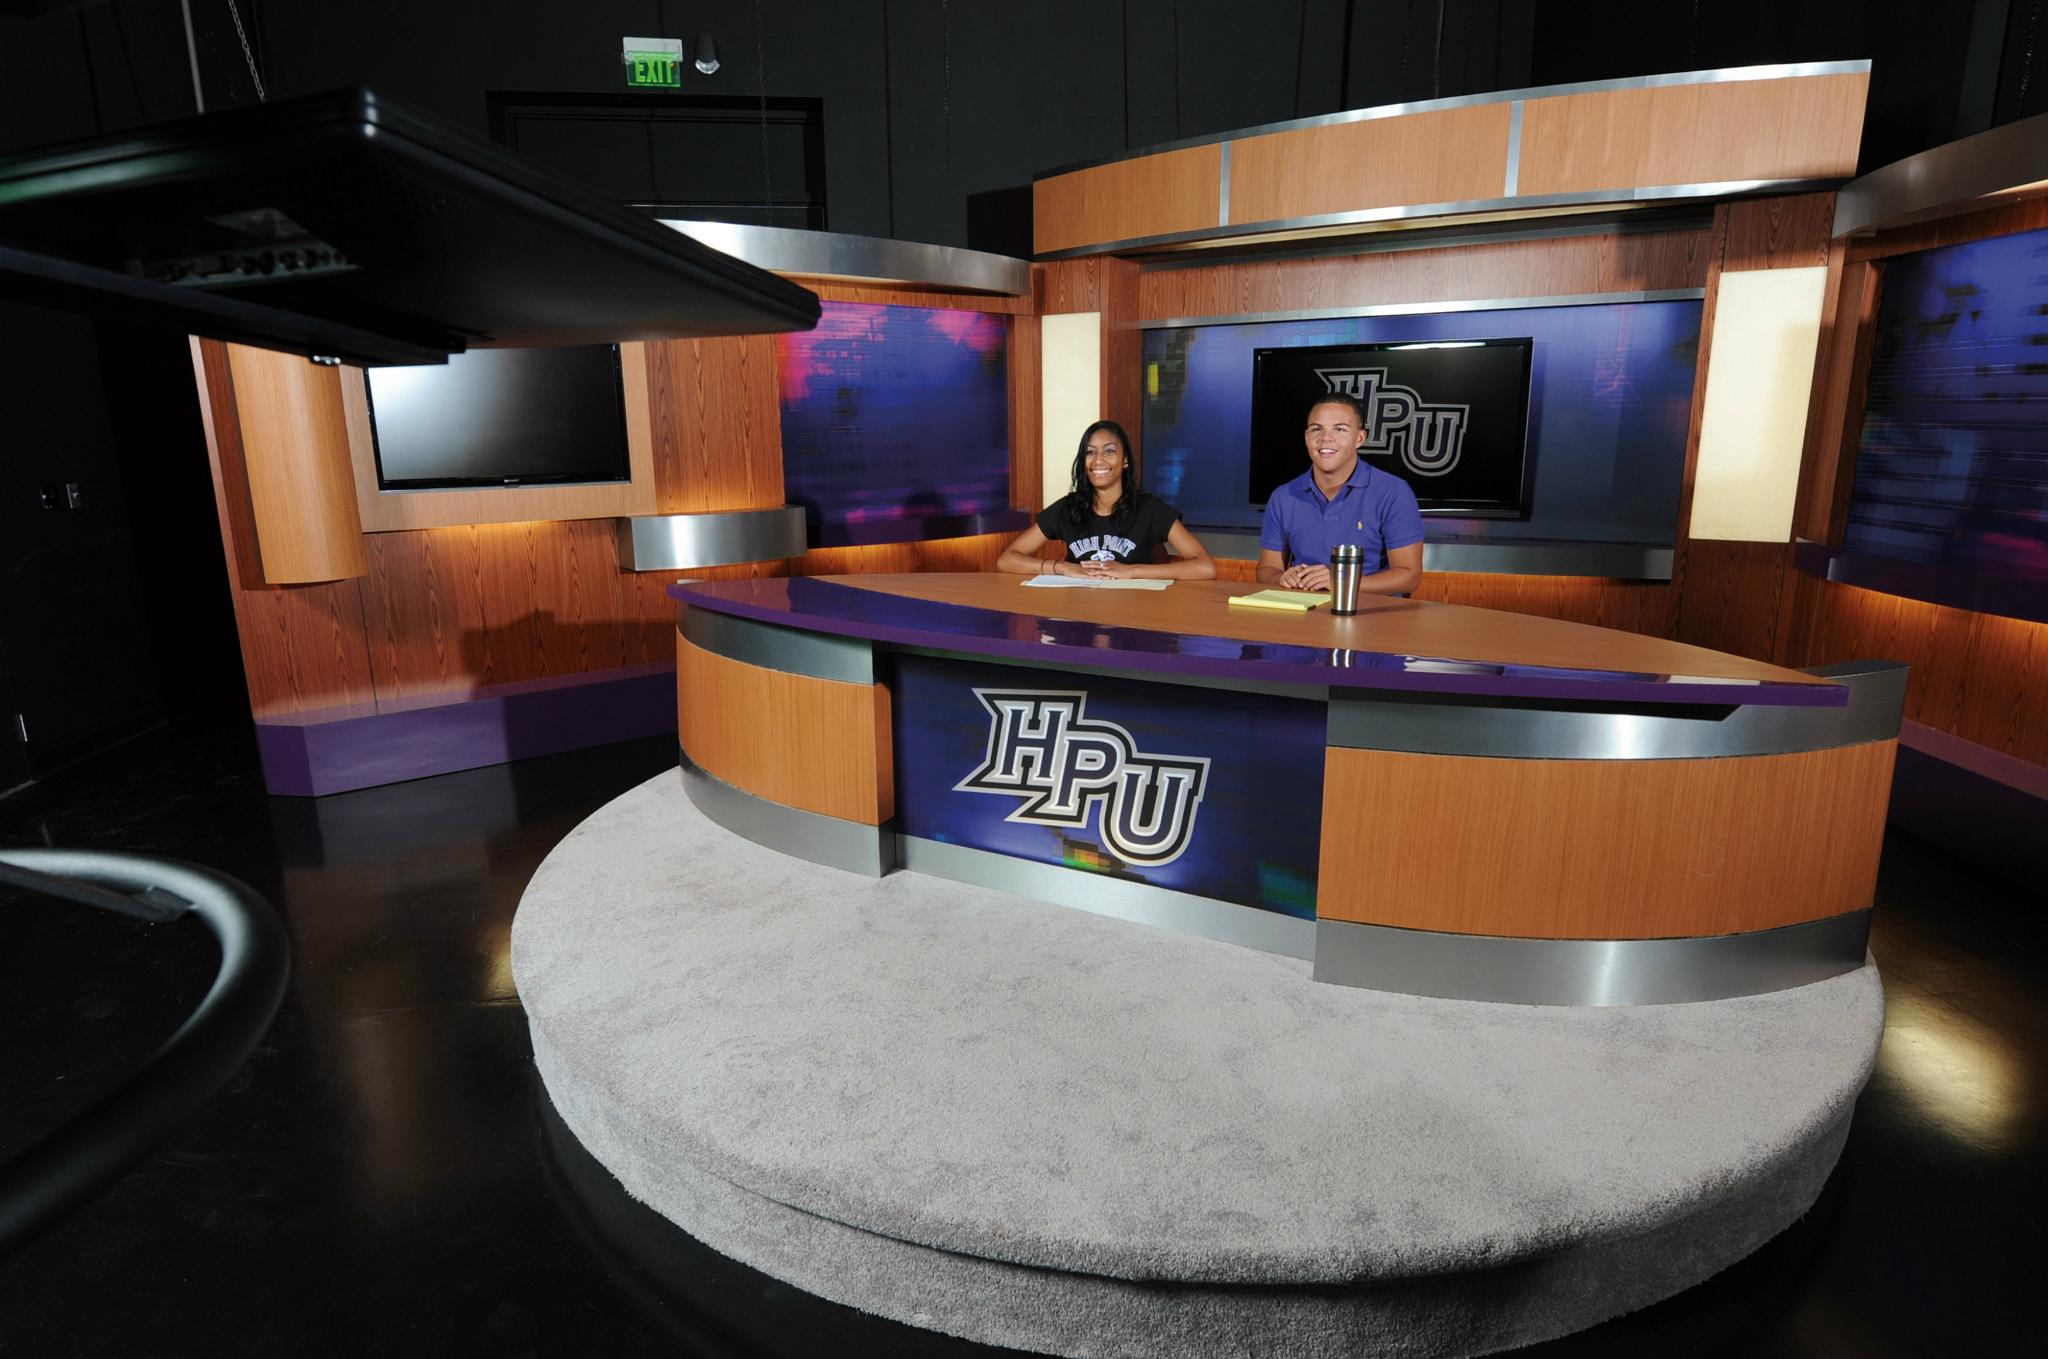 Experience High Point University in Virtual Reality